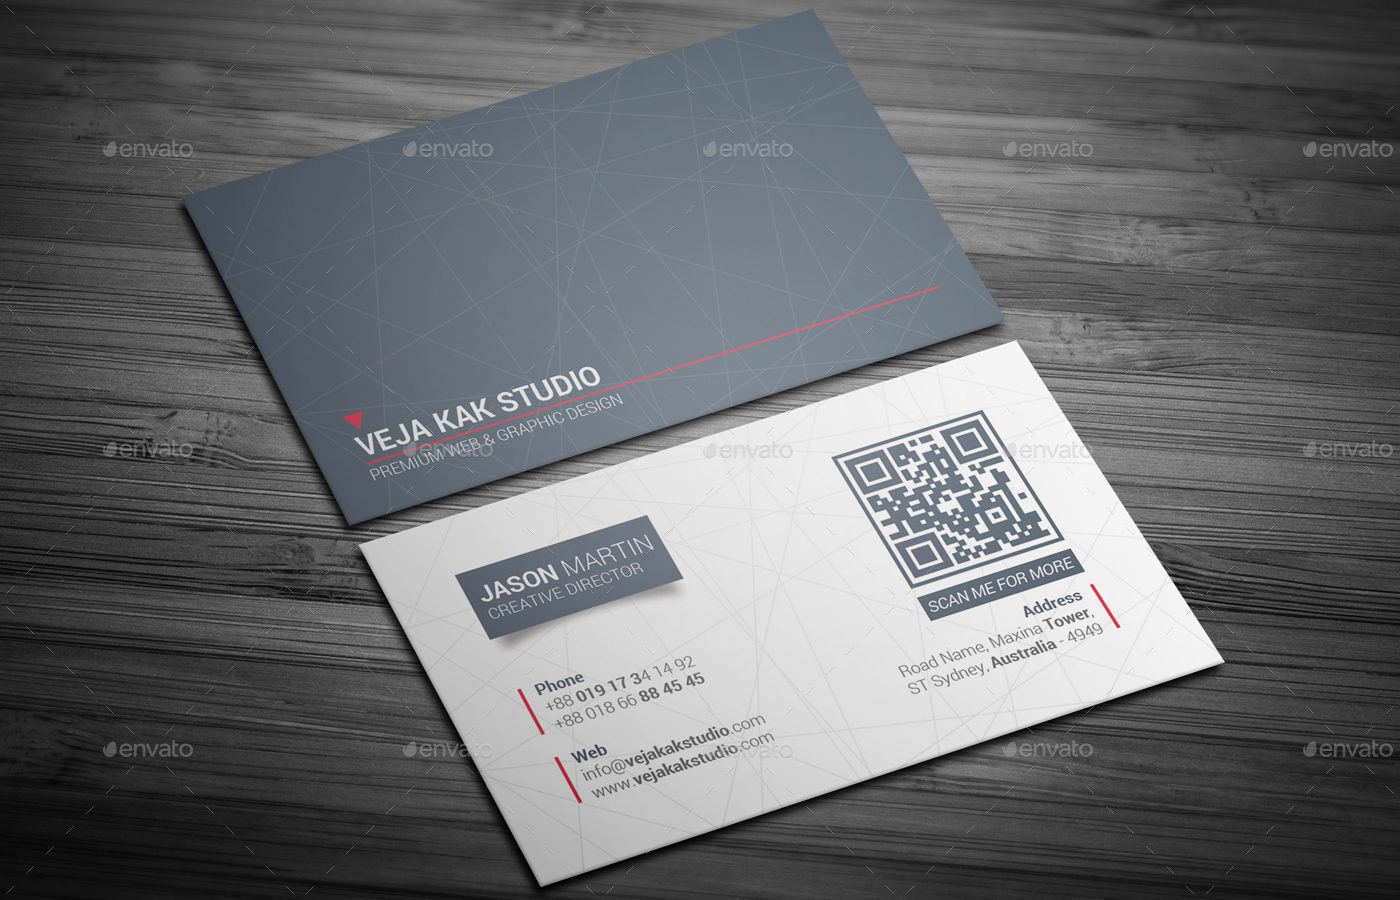 Sleek minimal business card by vejakakstudio graphicriver sleek minimal business card friedricerecipe Gallery